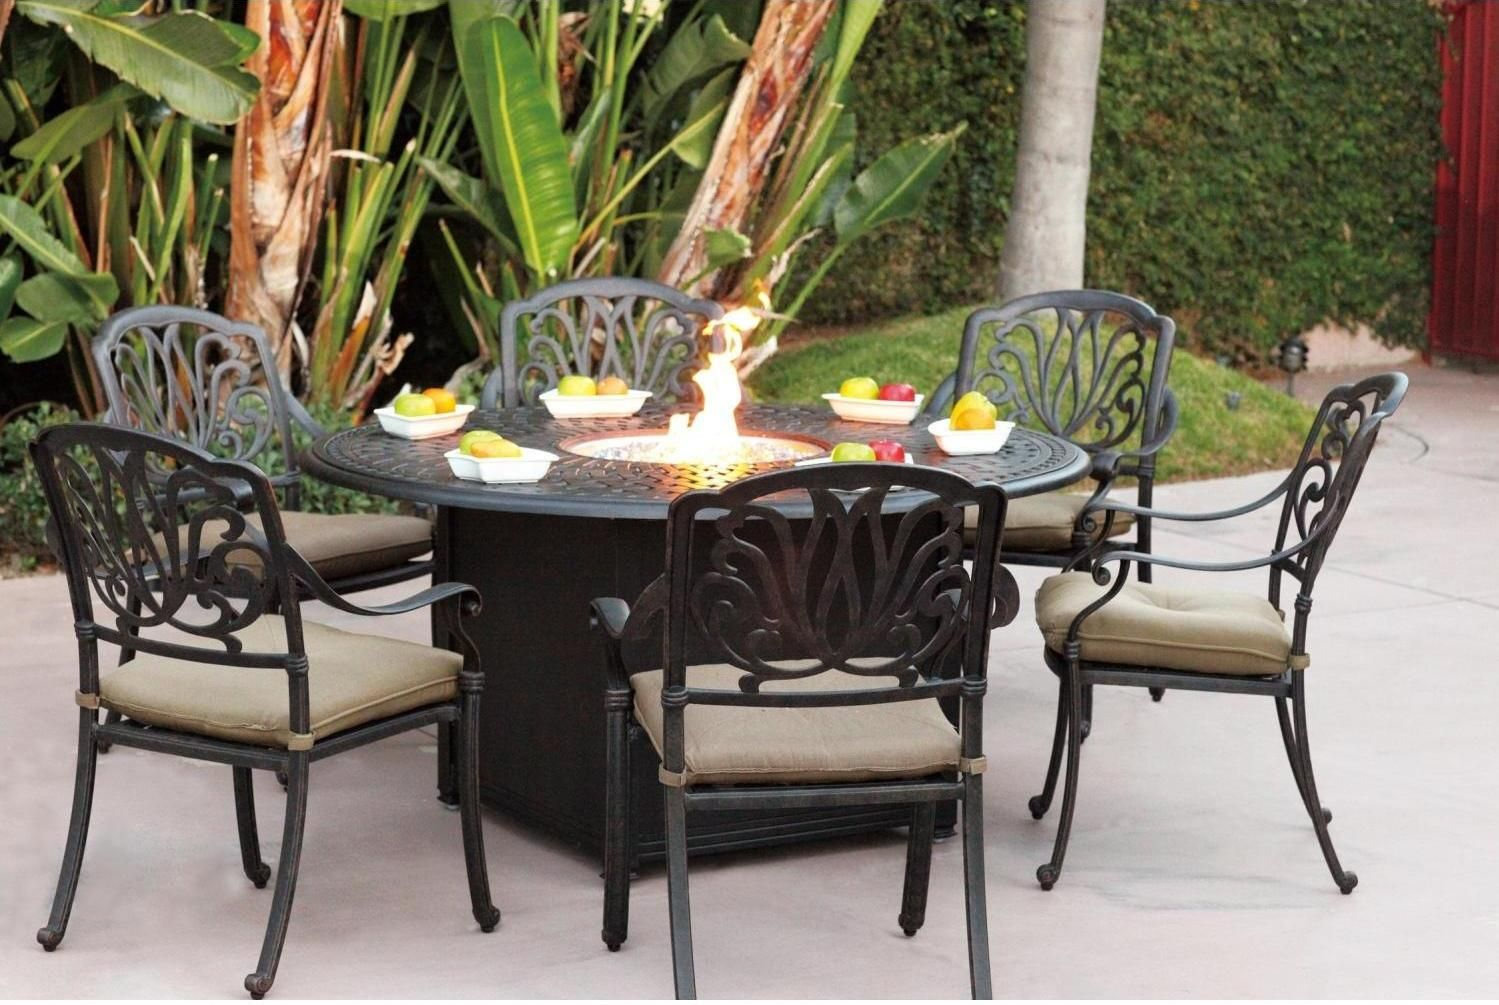 darlee propane and wood fire pit tables set consists of darlee elisabeth dining patio chair in cast aluminum with antique bronze finish and darlee 60 inch